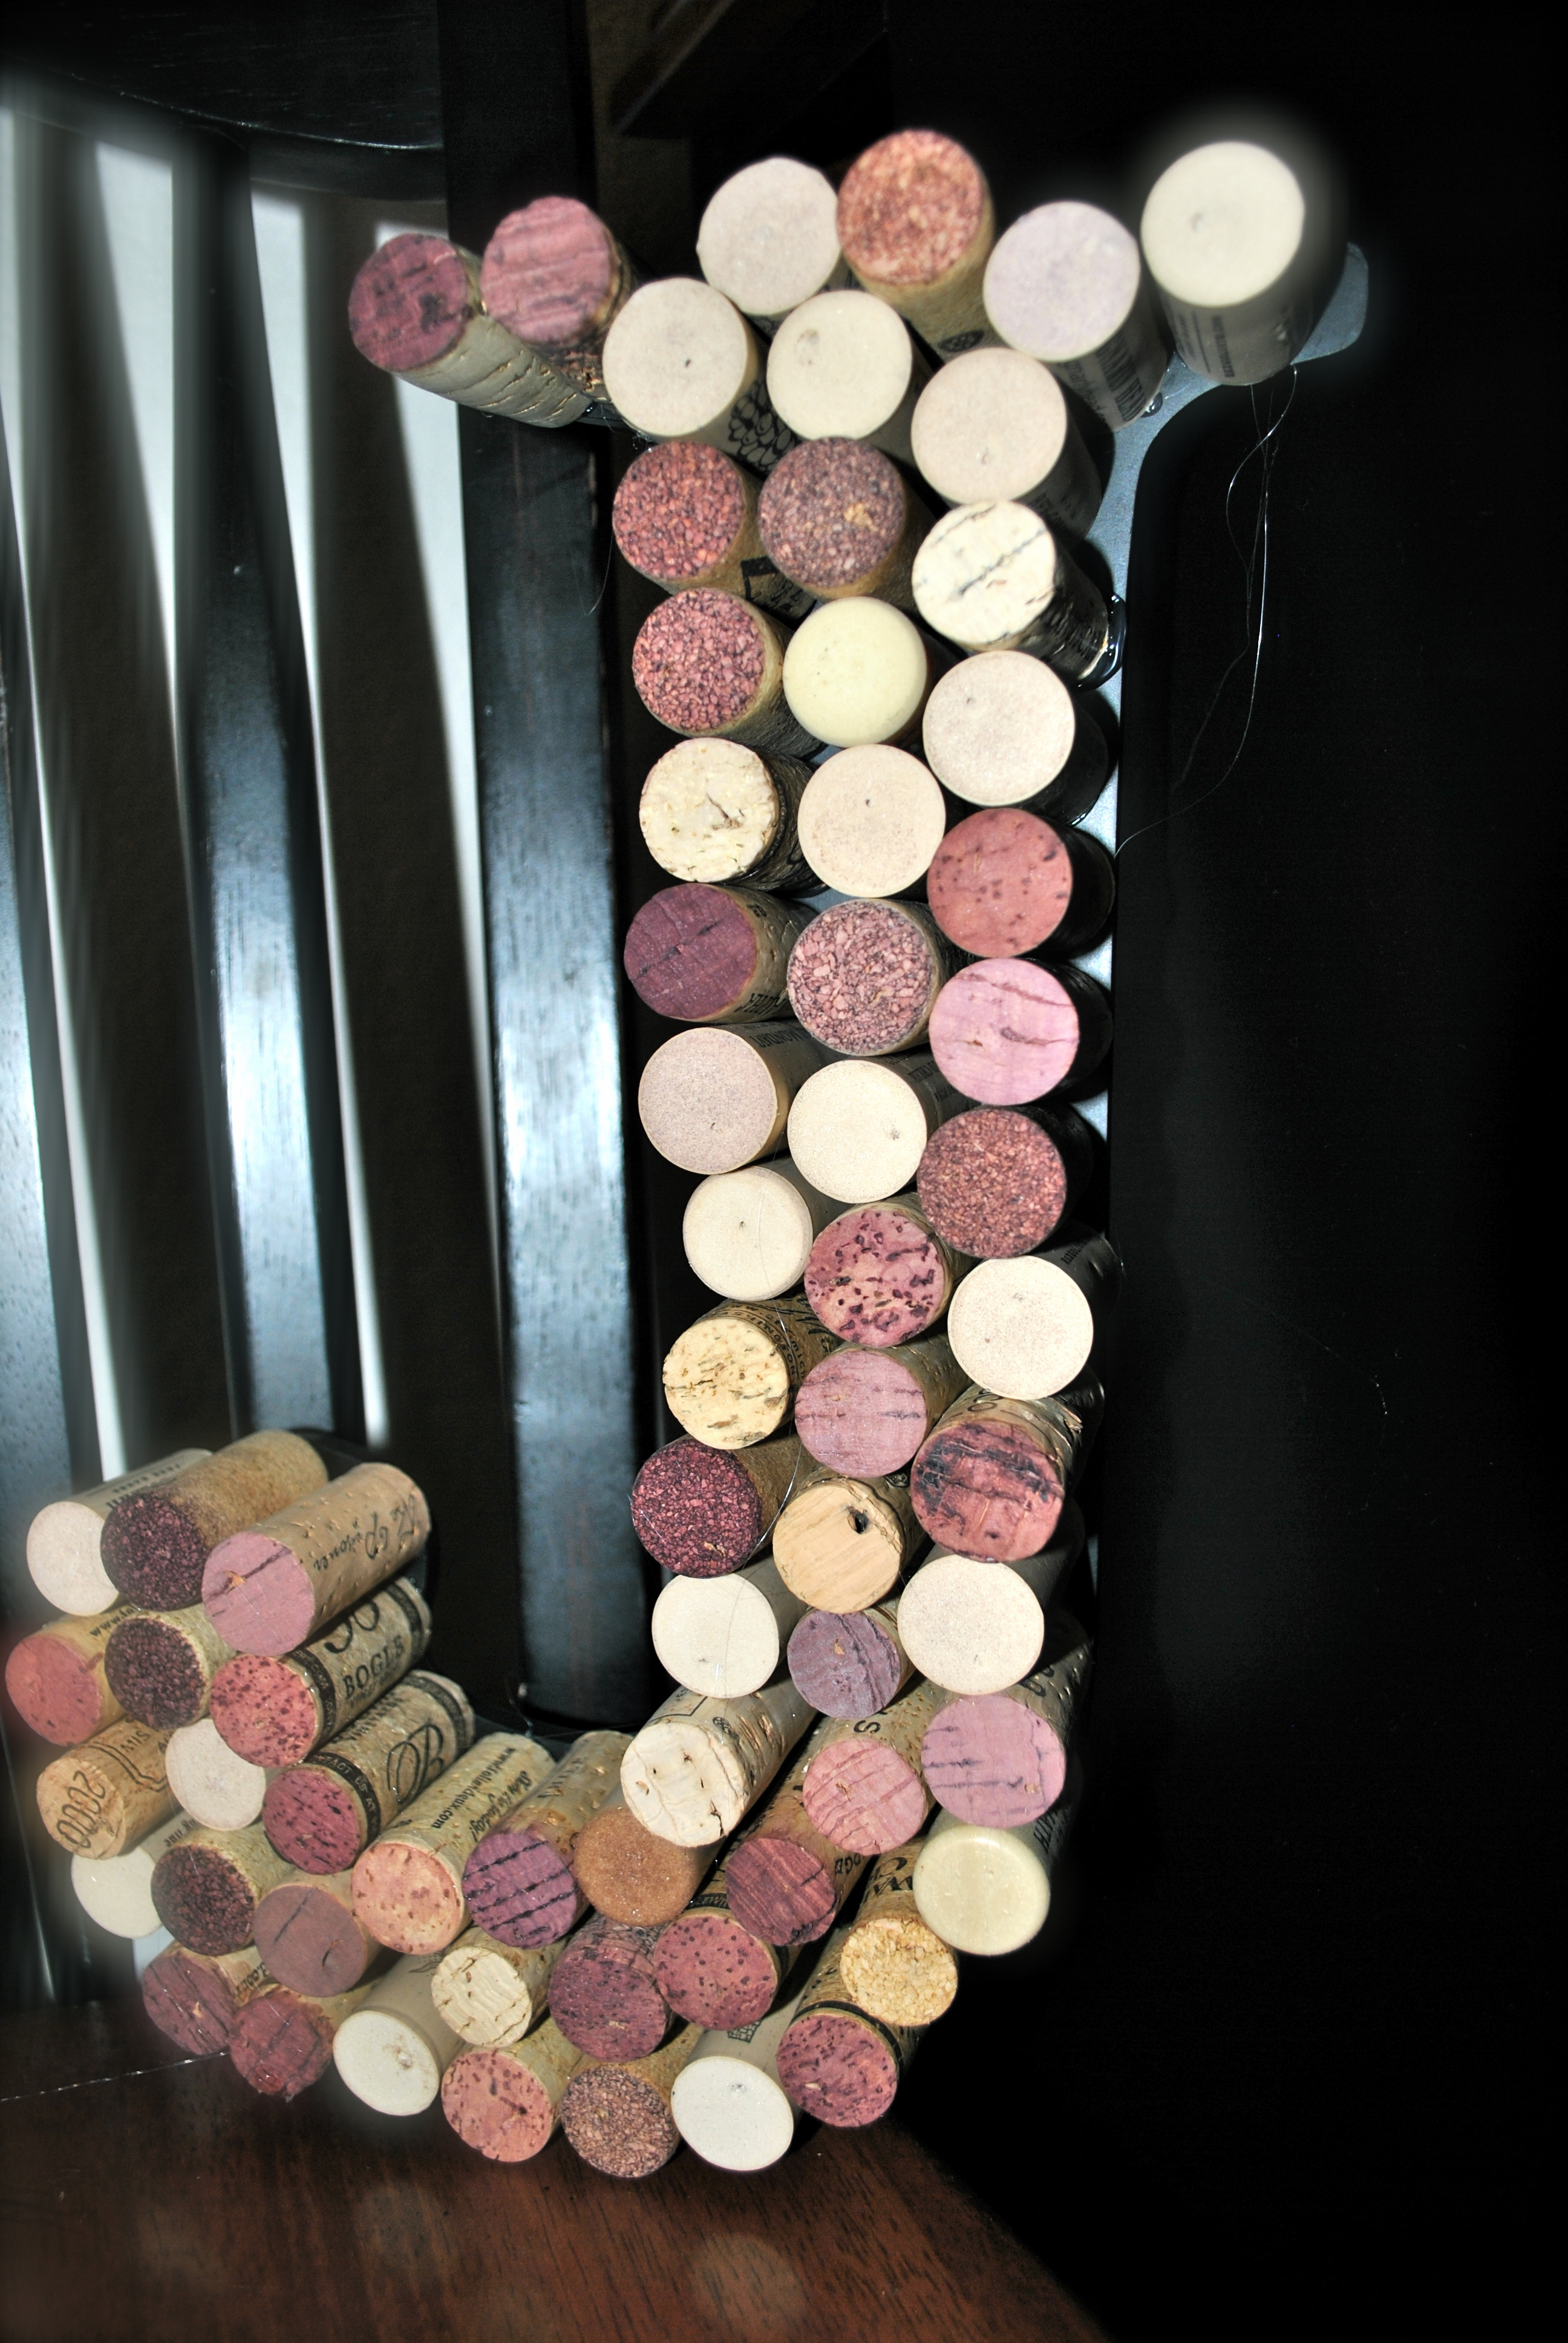 project day 100 get crafty wine cork monogram letterdiyrepurpose difficulty rating 1easiest 5 way too hard 2 just a bit time consuming trying